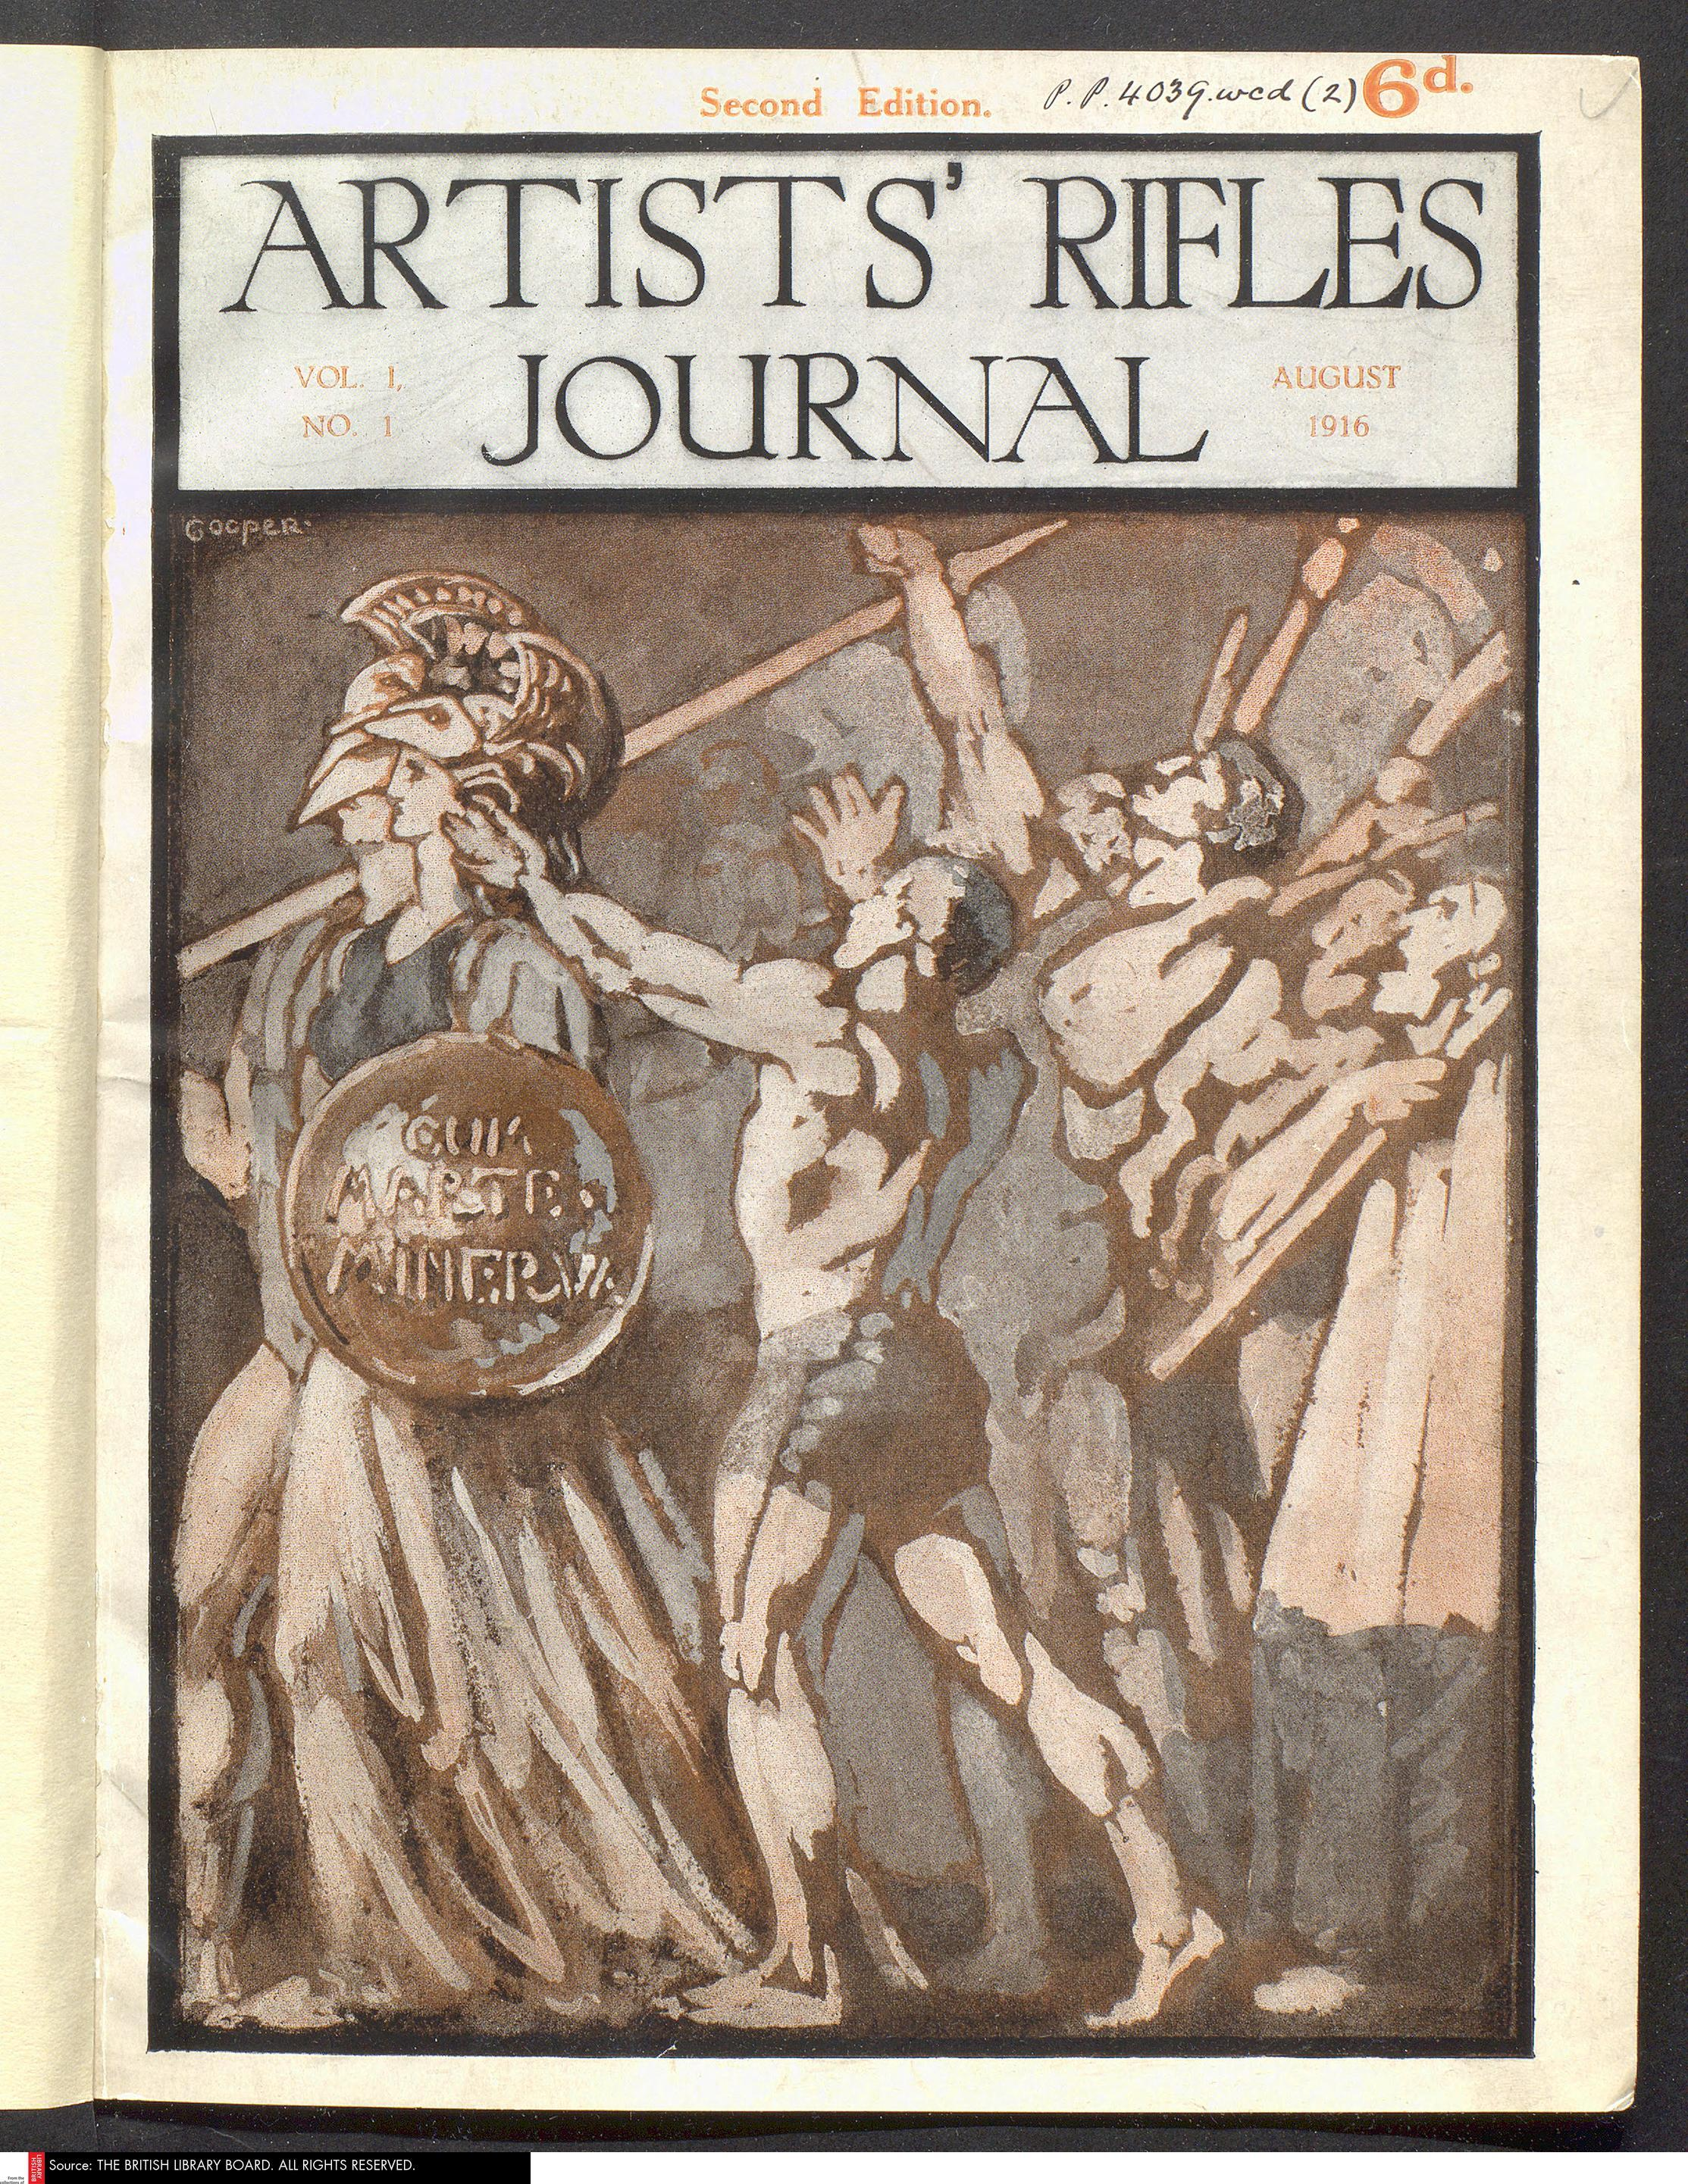 Cover of the Artists Rifles Journal